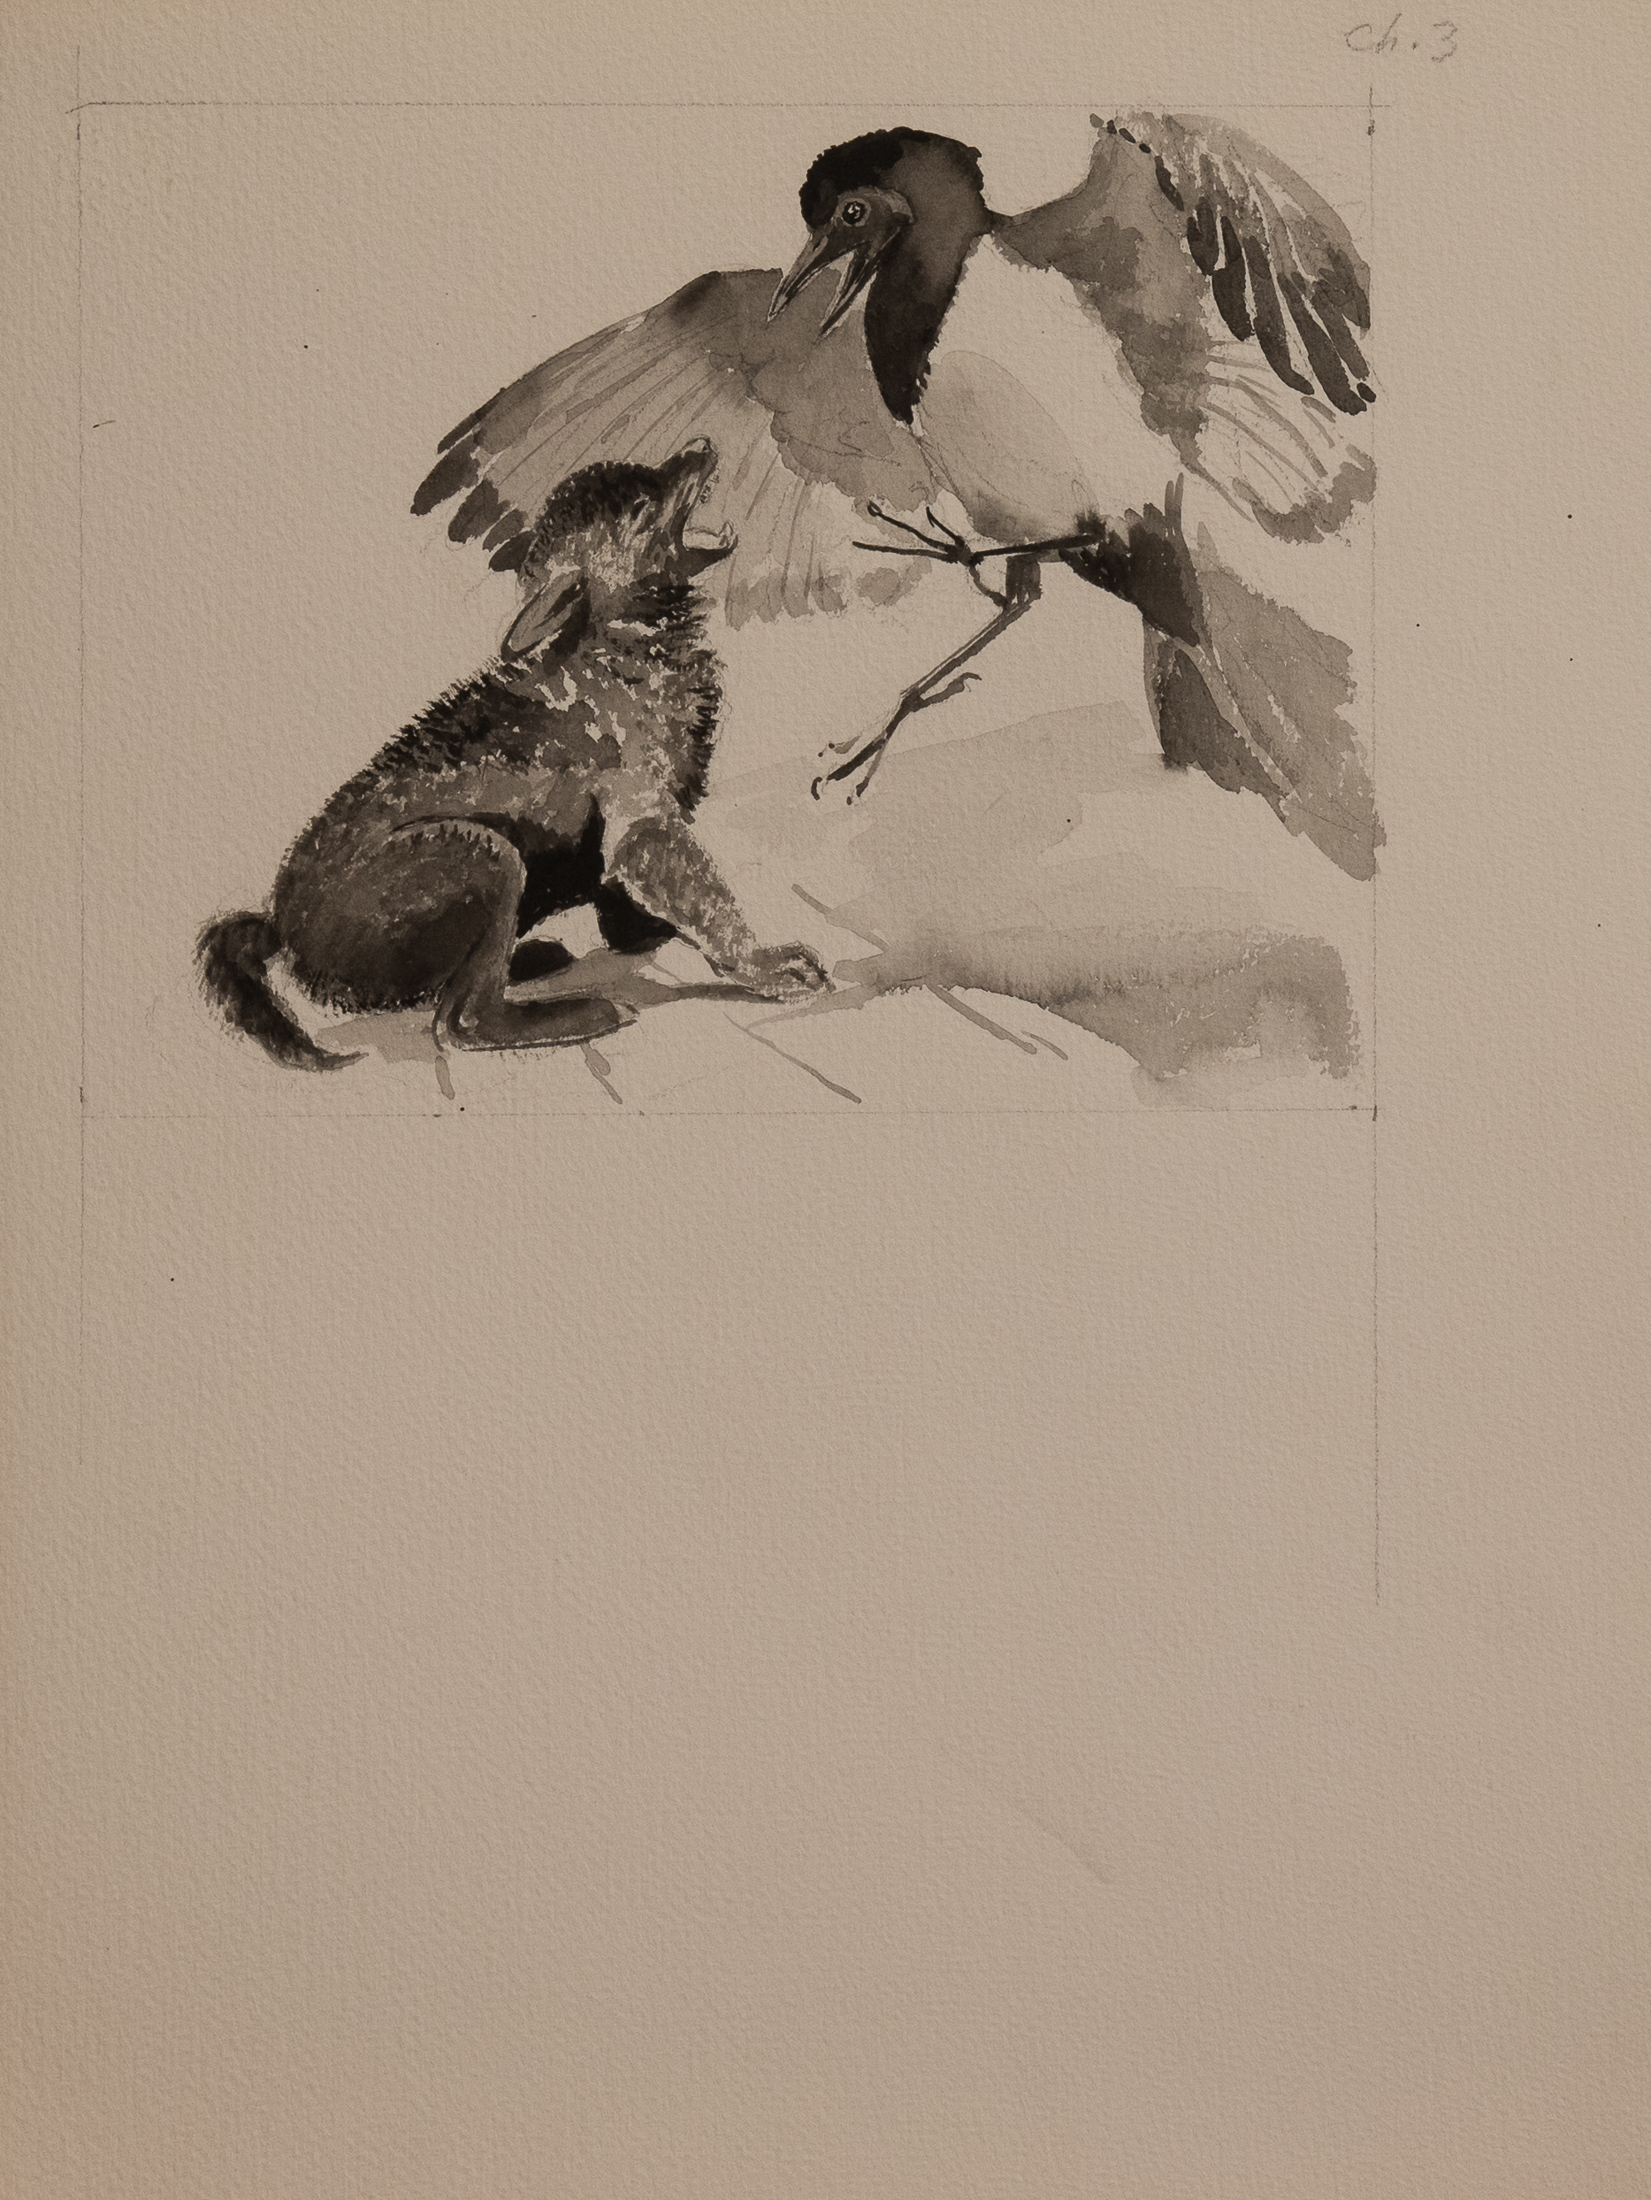 bird and cub (1 of 1)